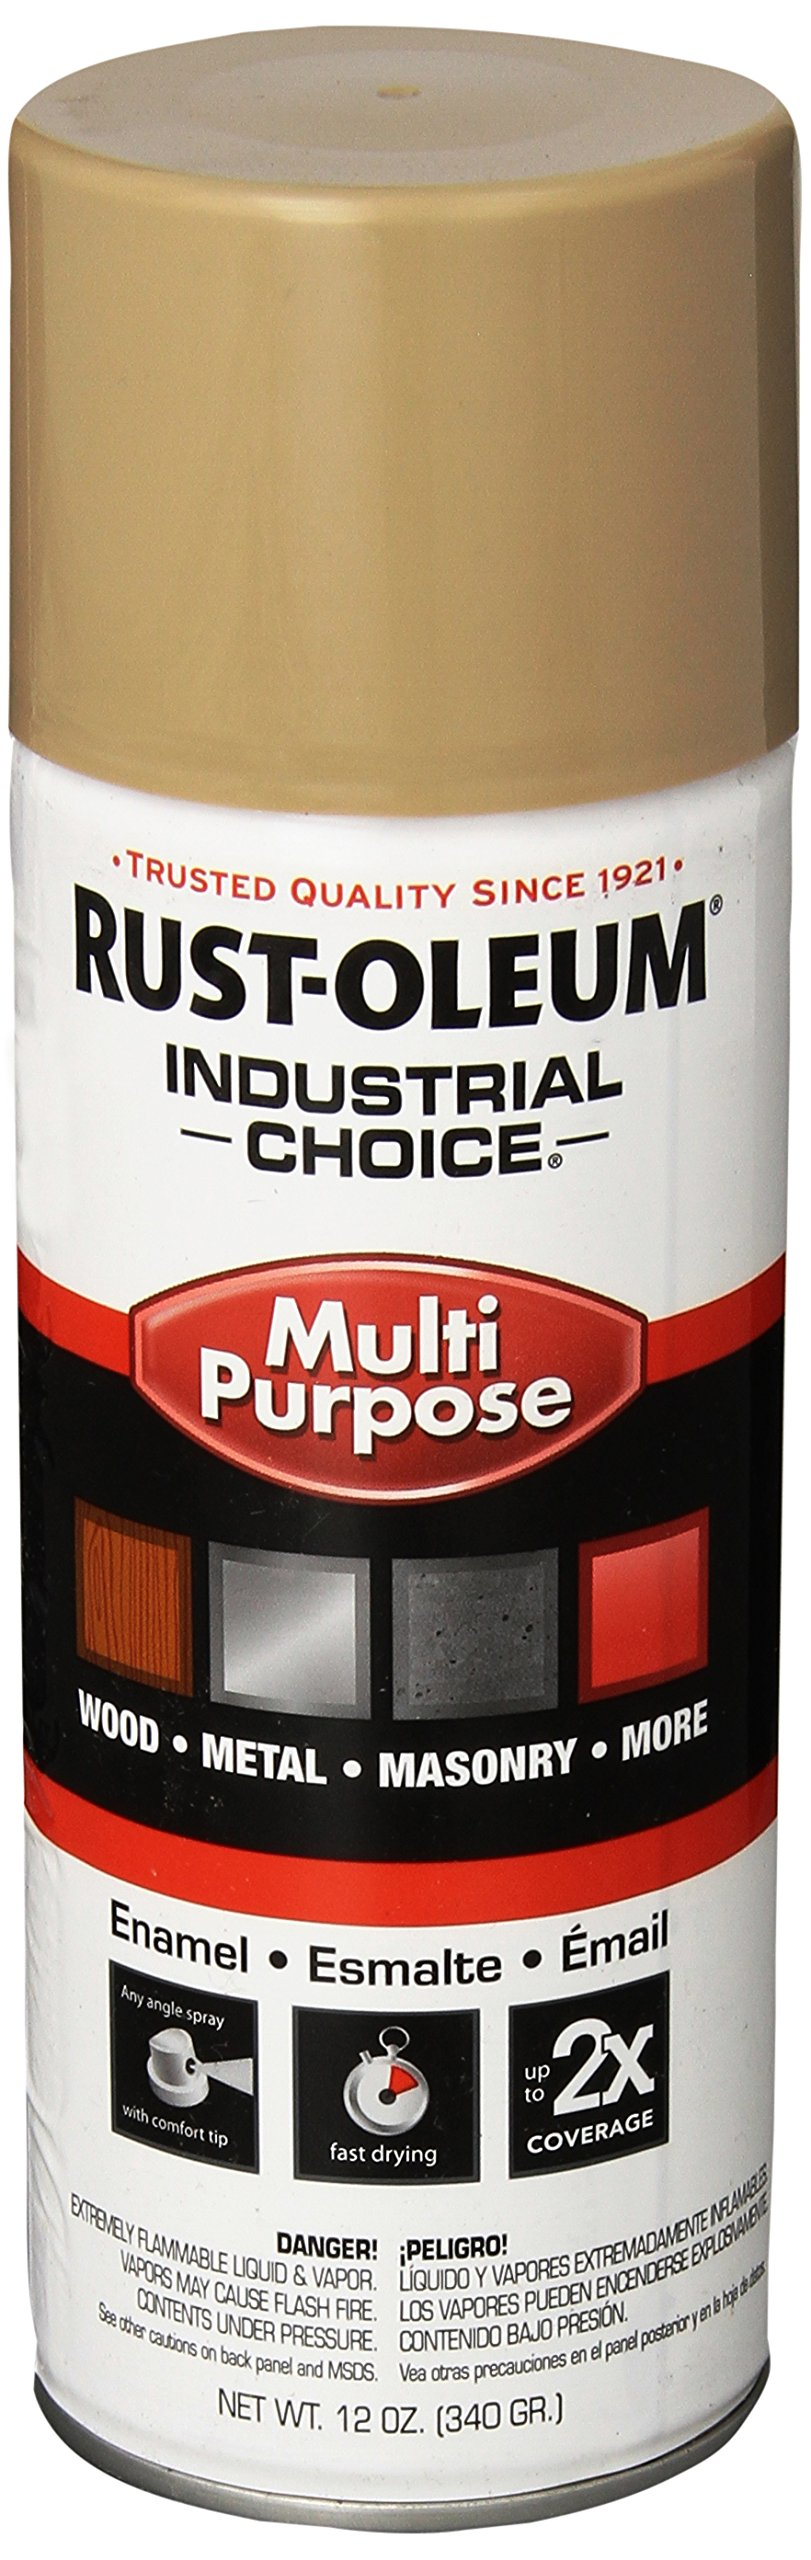 Rust-Oleum 1671830 Beige 1600 System General Purpose Enamel Spray Paint, 16 fl. oz. container, 12 oz. weight fill, Can (Pack of 6)